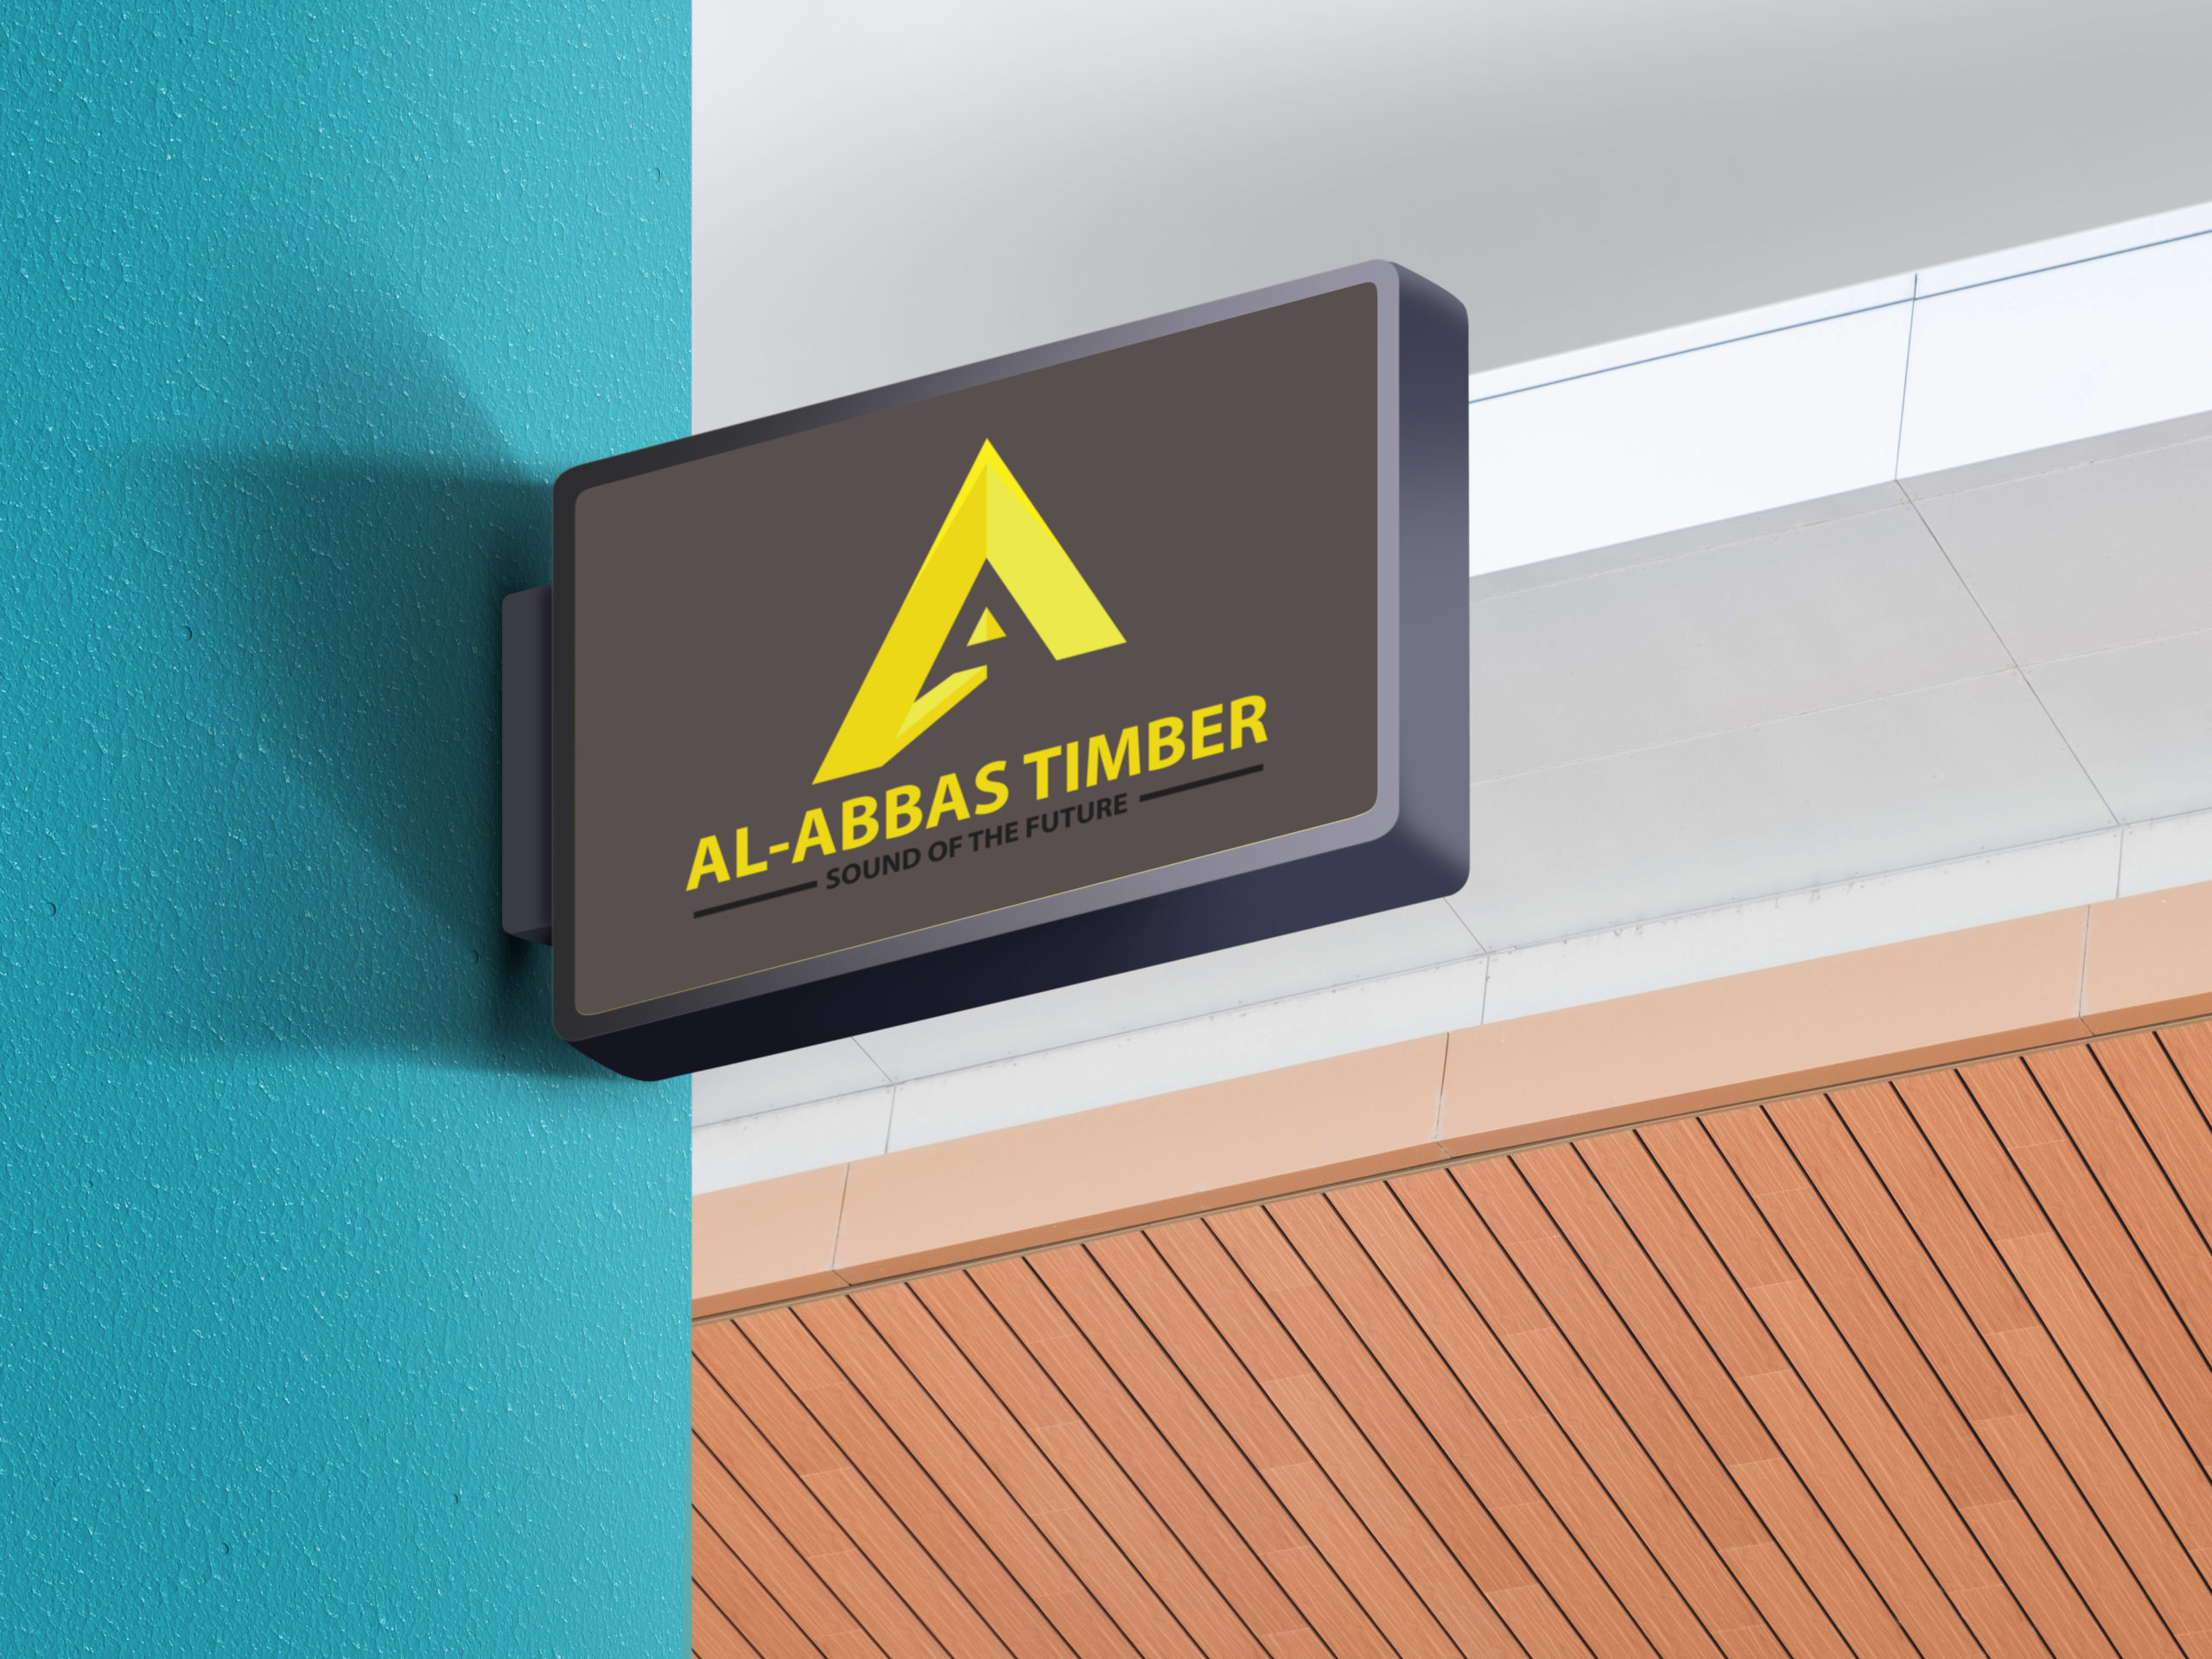 Al Abbas timber shop logo design by Badri Design